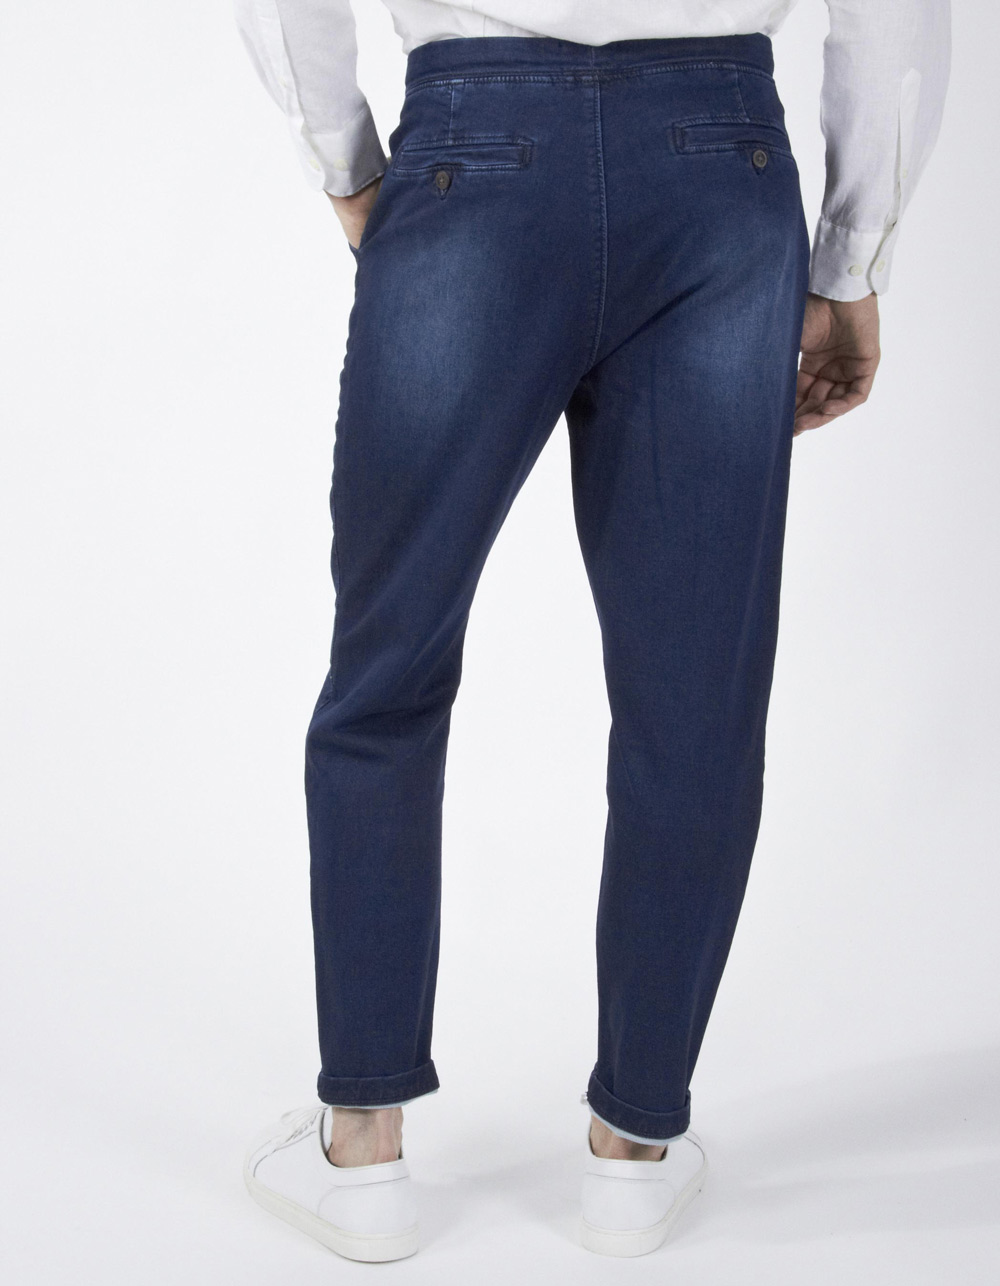 Dark navy blue jogging trousers - Backside